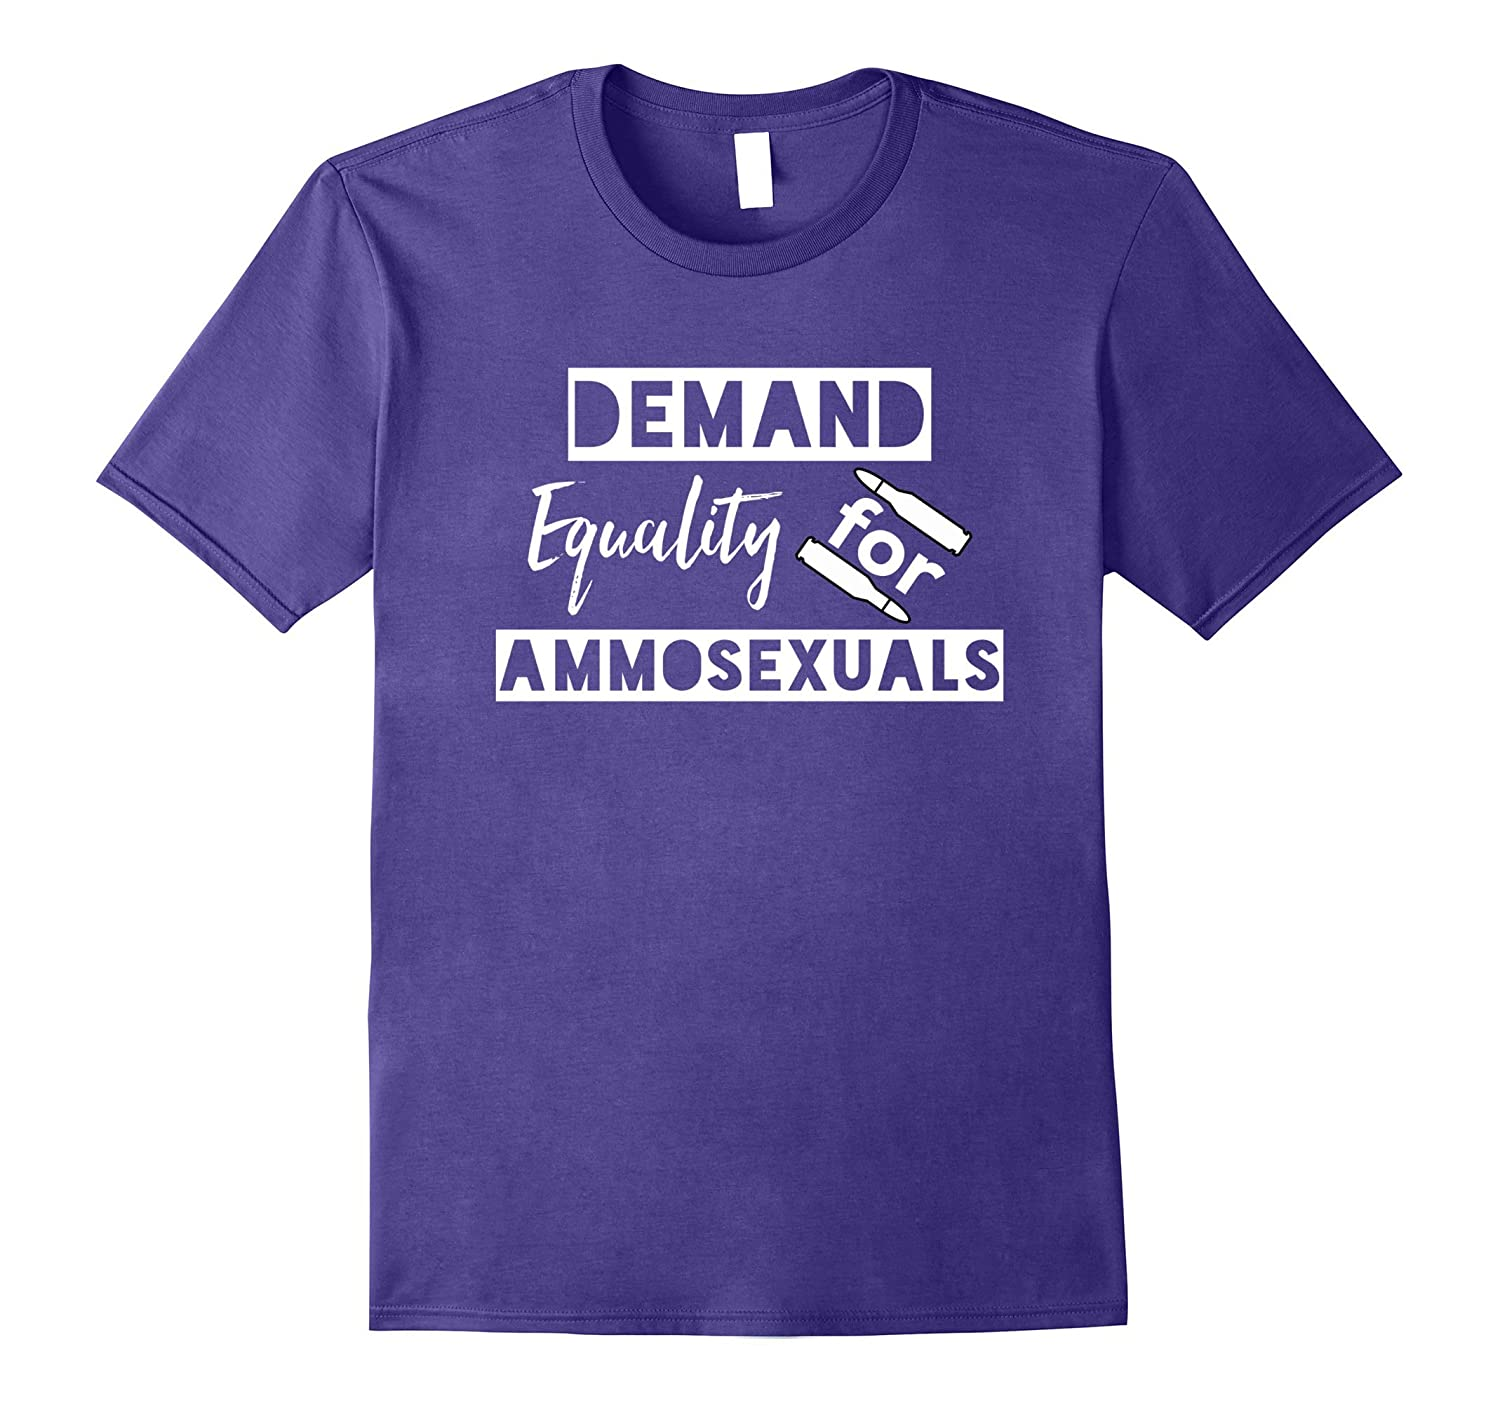 Demand Equality For Ammosexuals tShirt